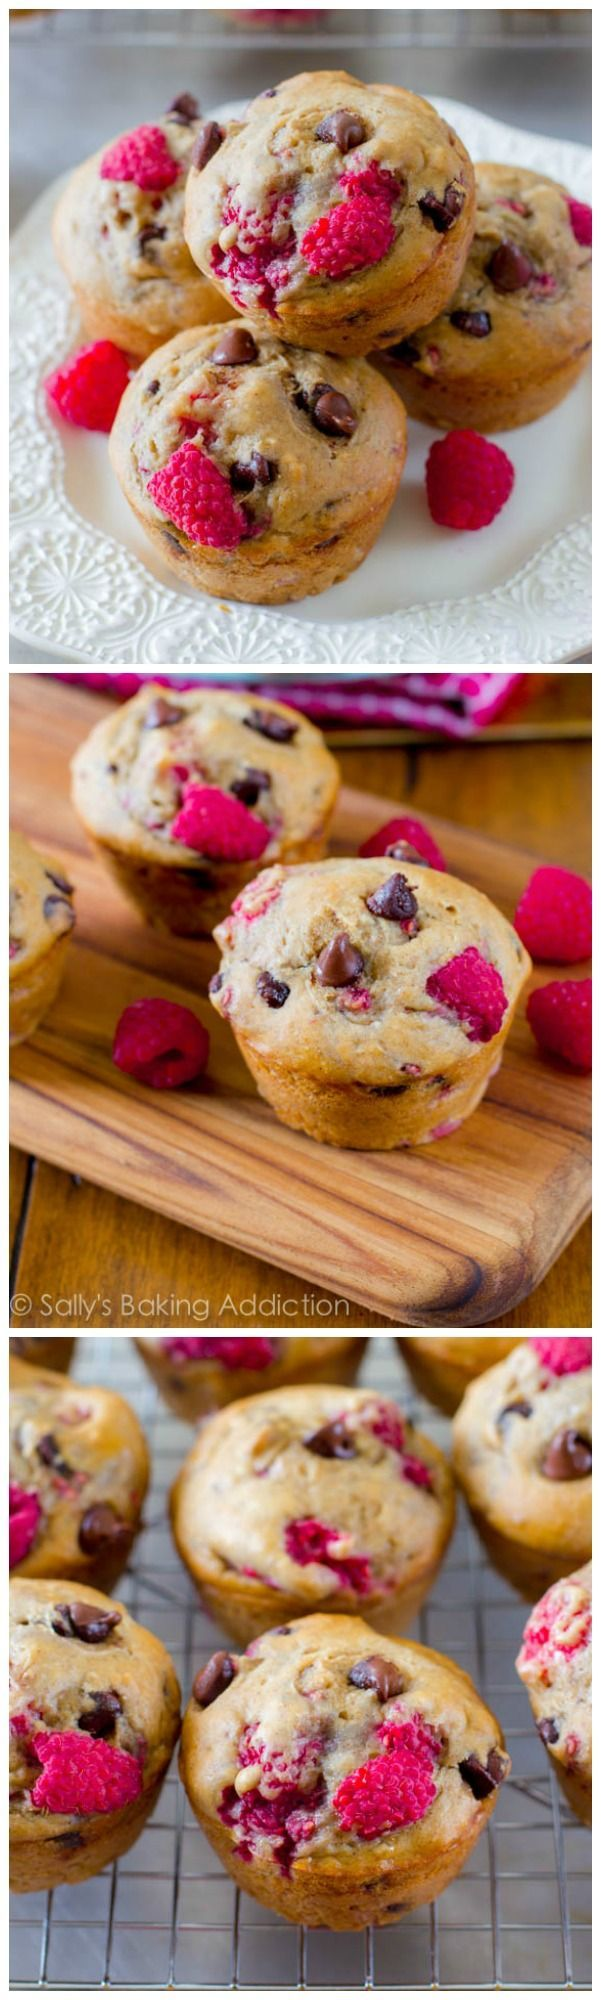 A healthy, low-fat muffin bursting with juicy raspberries, mashed bananas, and a sprinkle of chocolate chips. Whole wheat, low sugar, and protein packed!